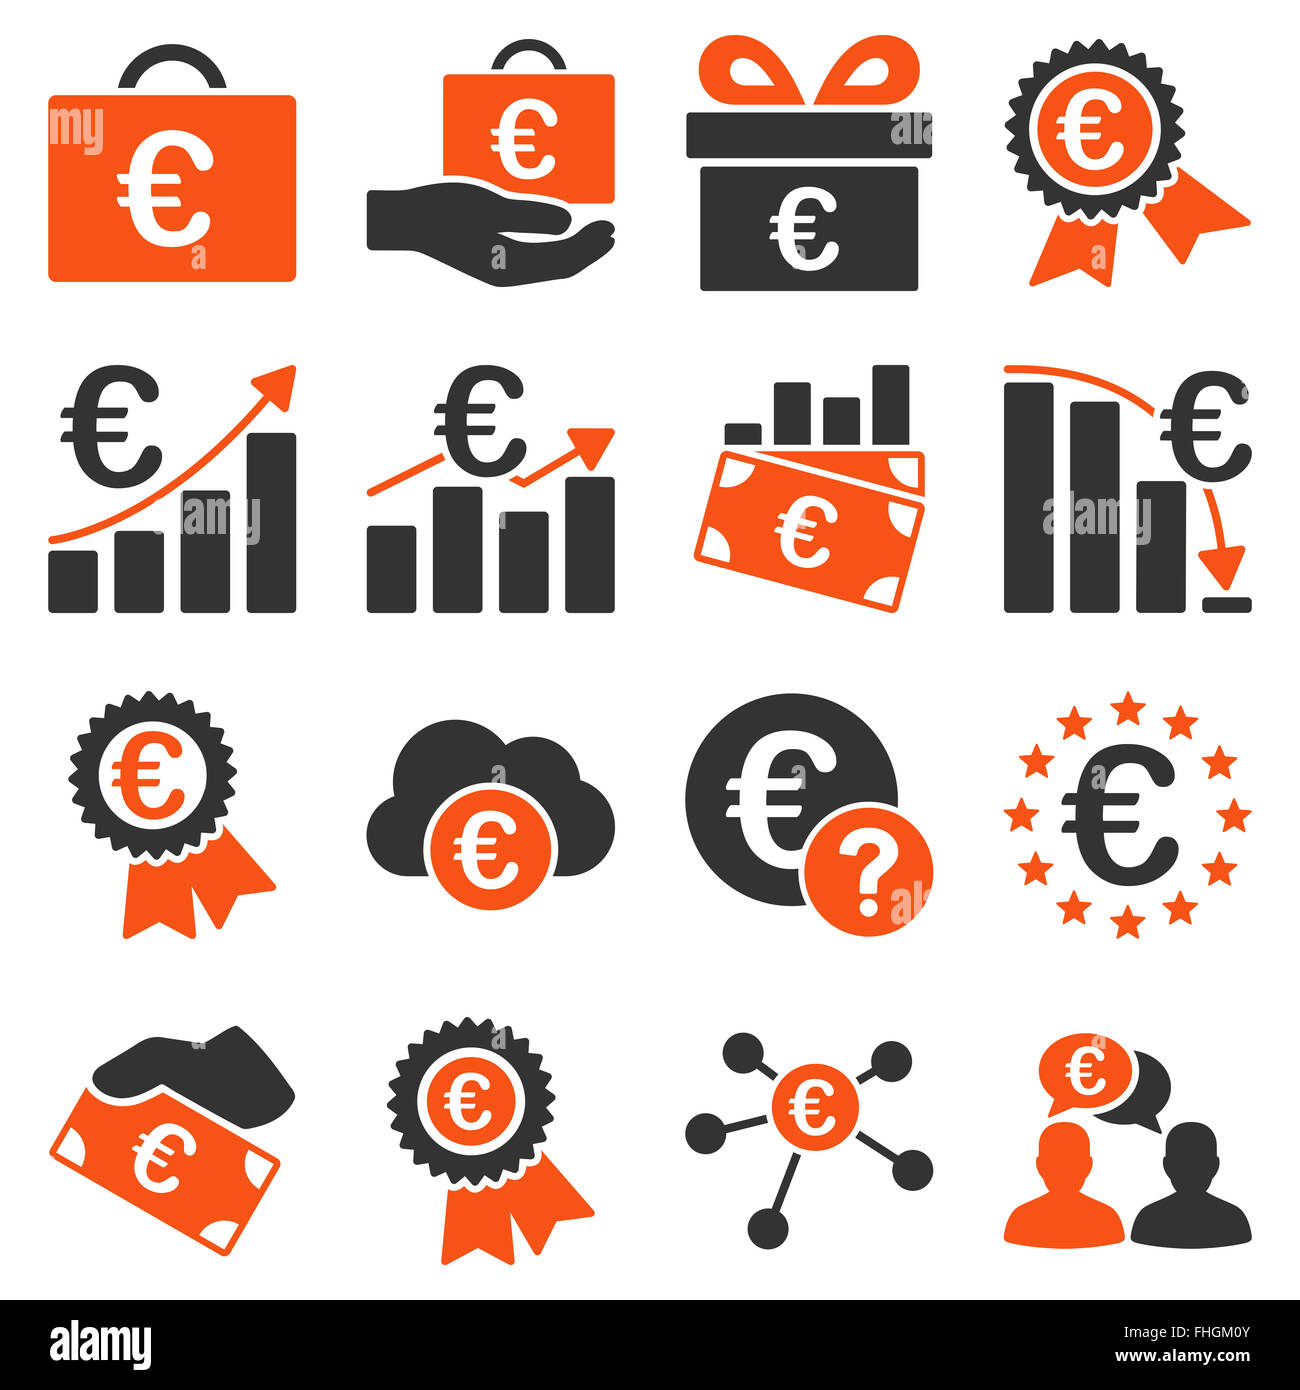 Euro banking business and service tools icons - Stock Image